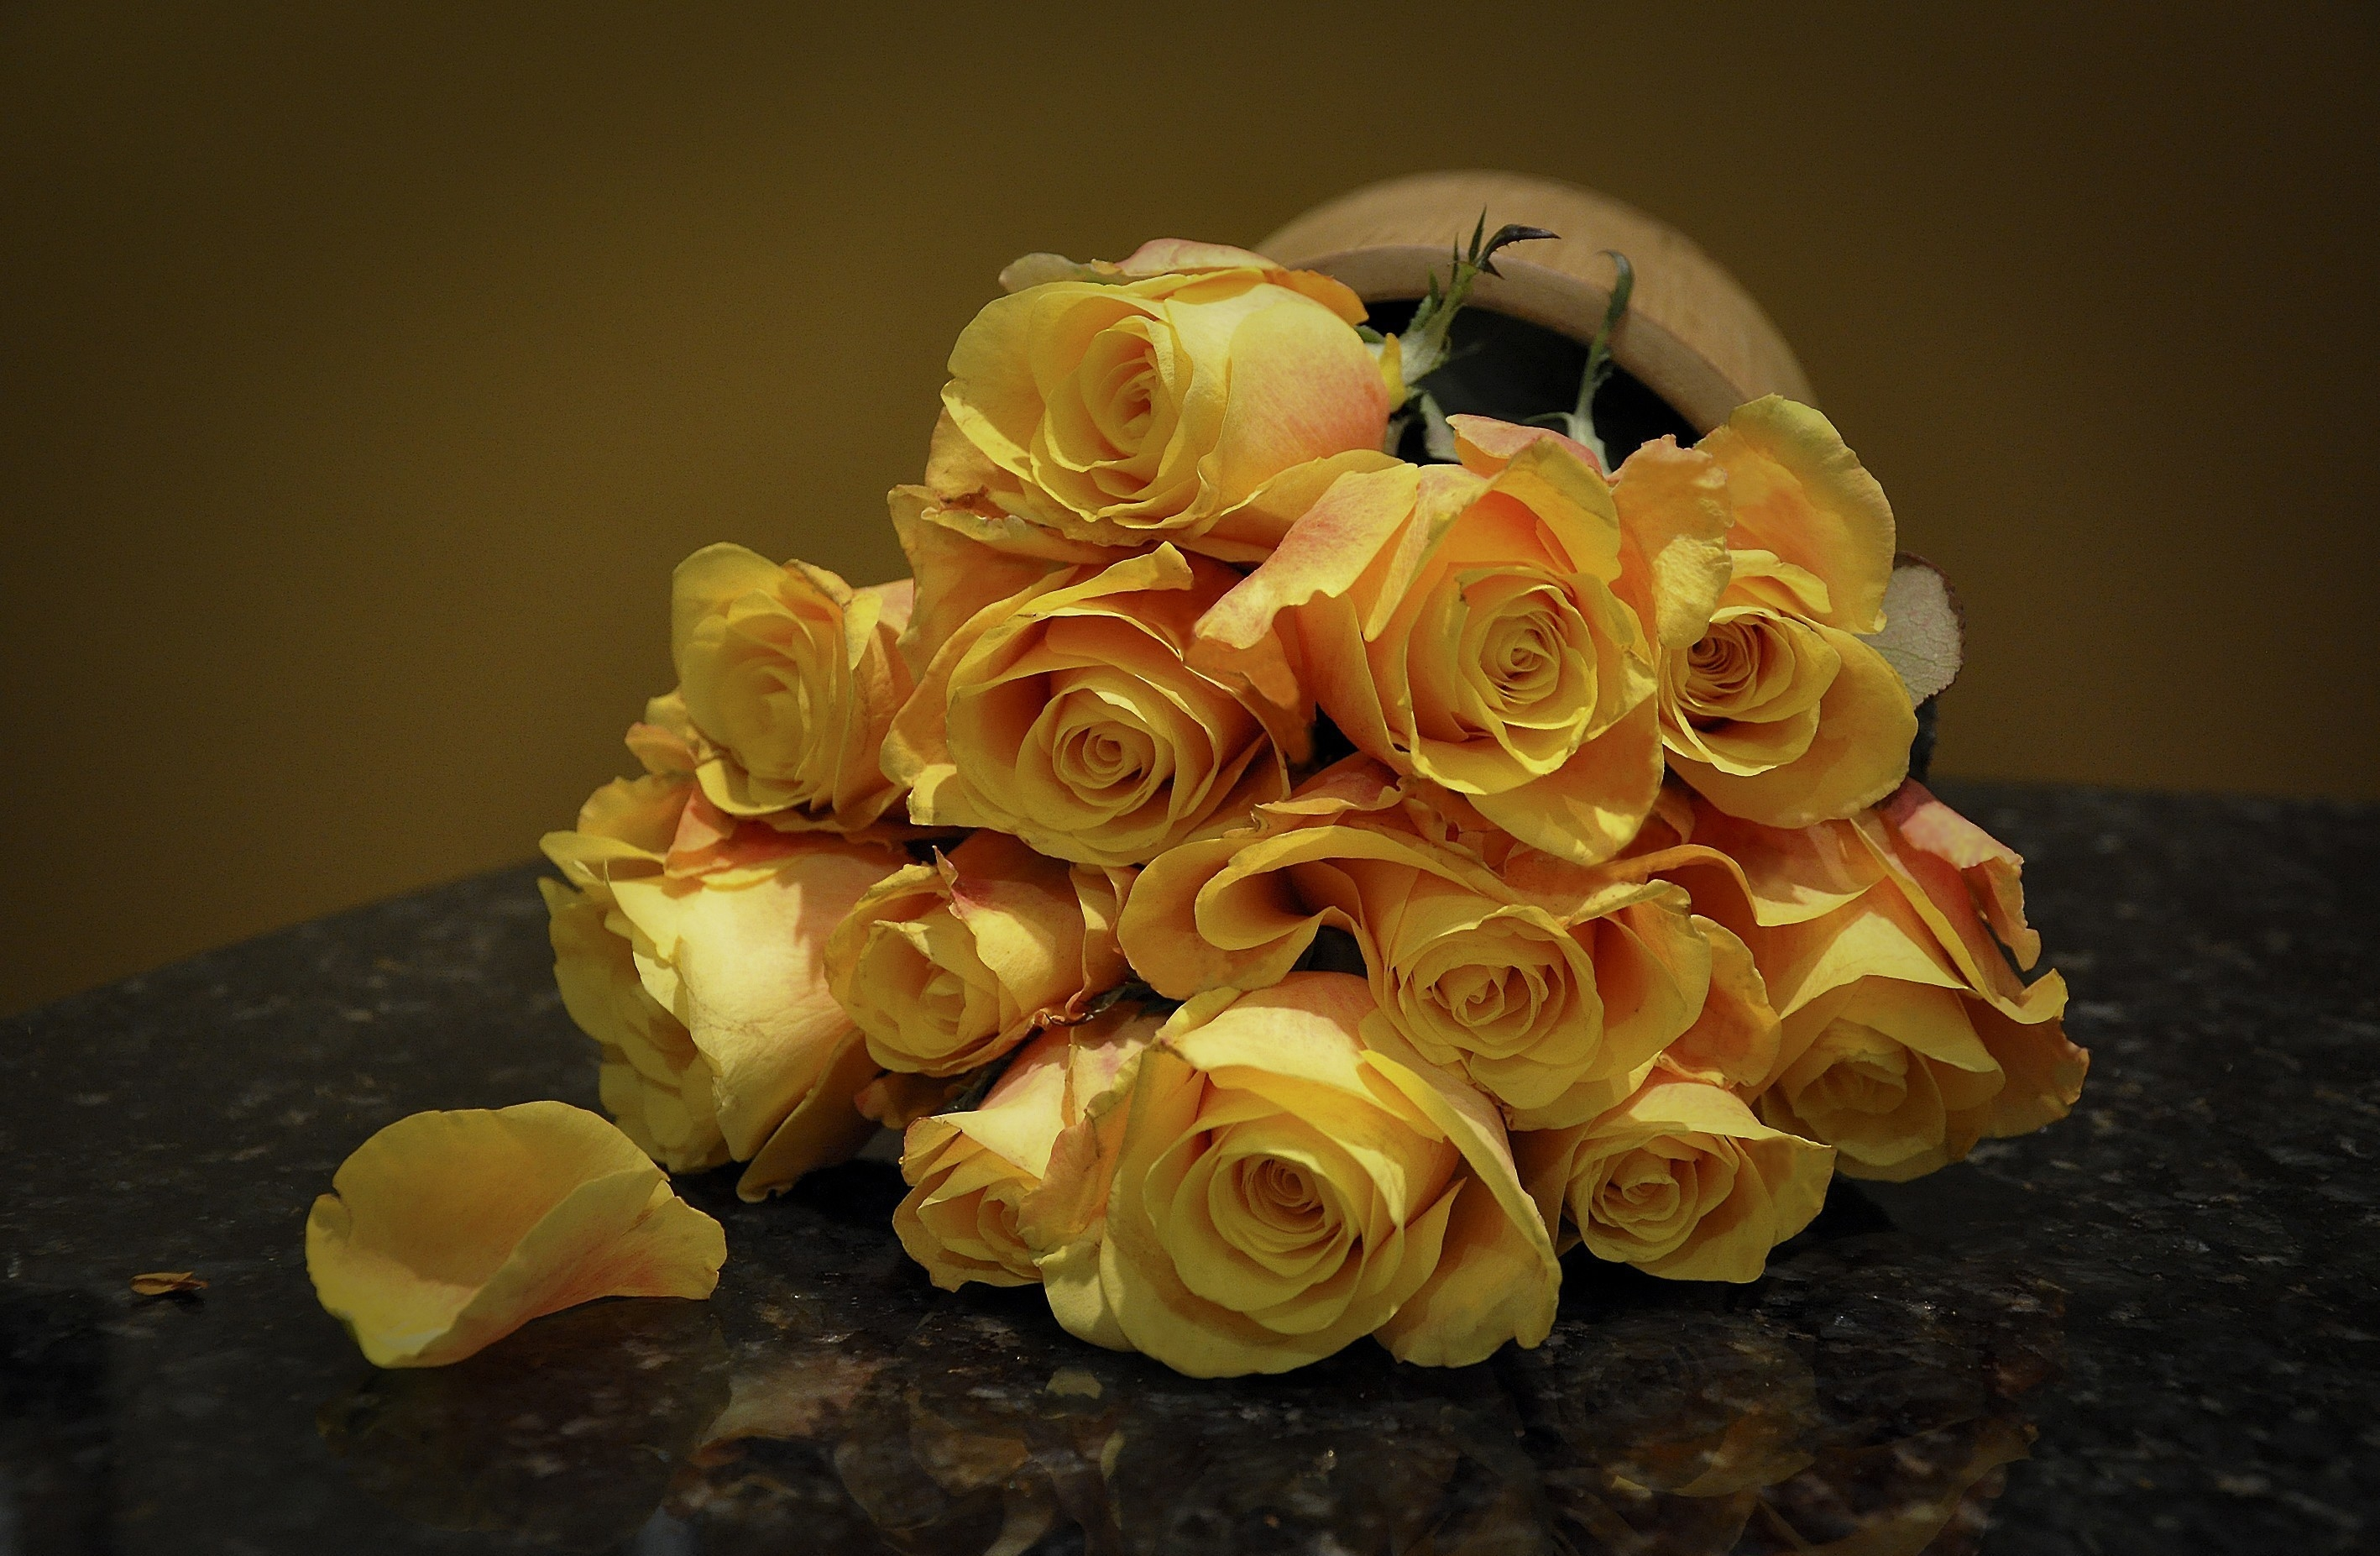 59627 download wallpaper Flowers, Roses, Spotted, Spotty, Bouquet screensavers and pictures for free